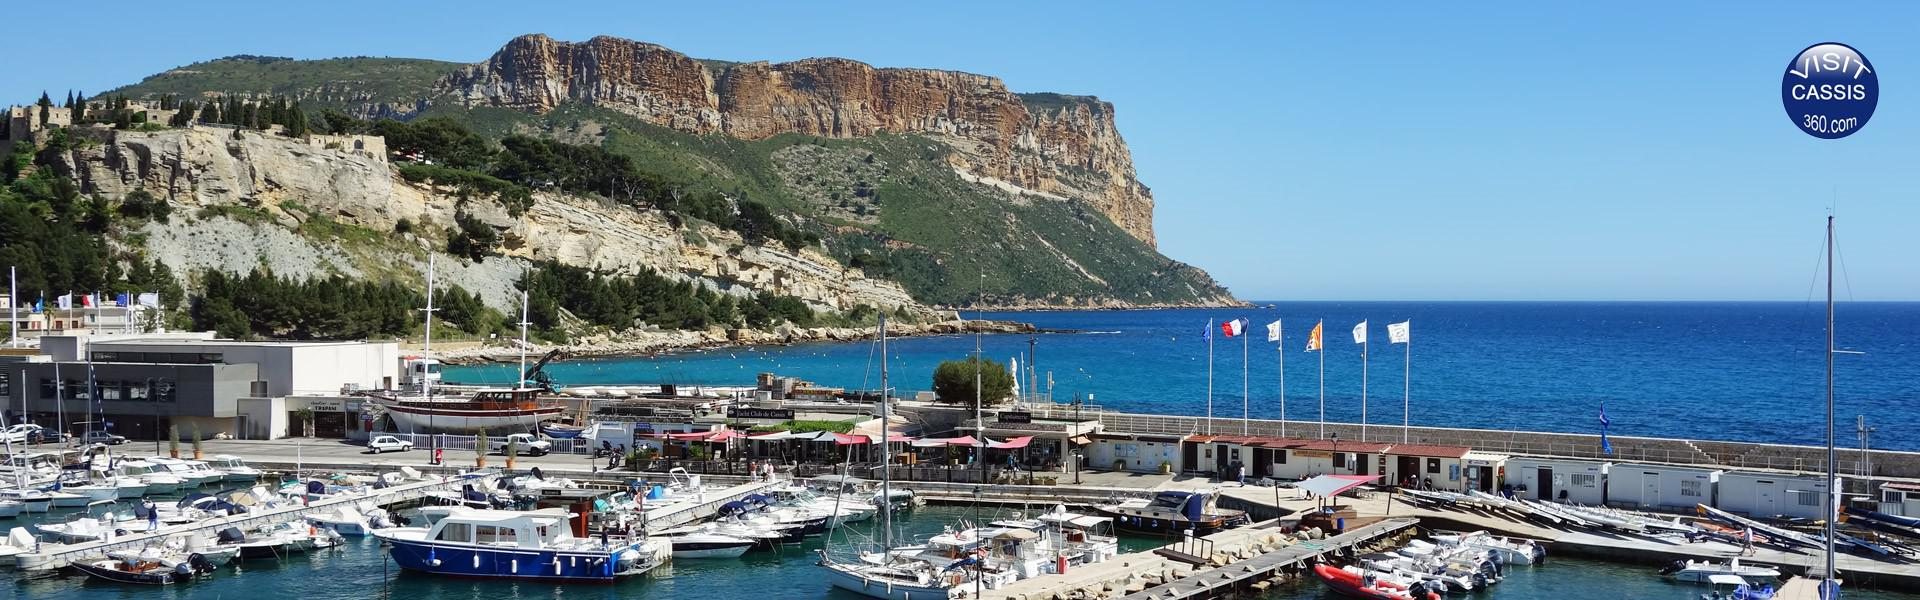 Town of Cassis